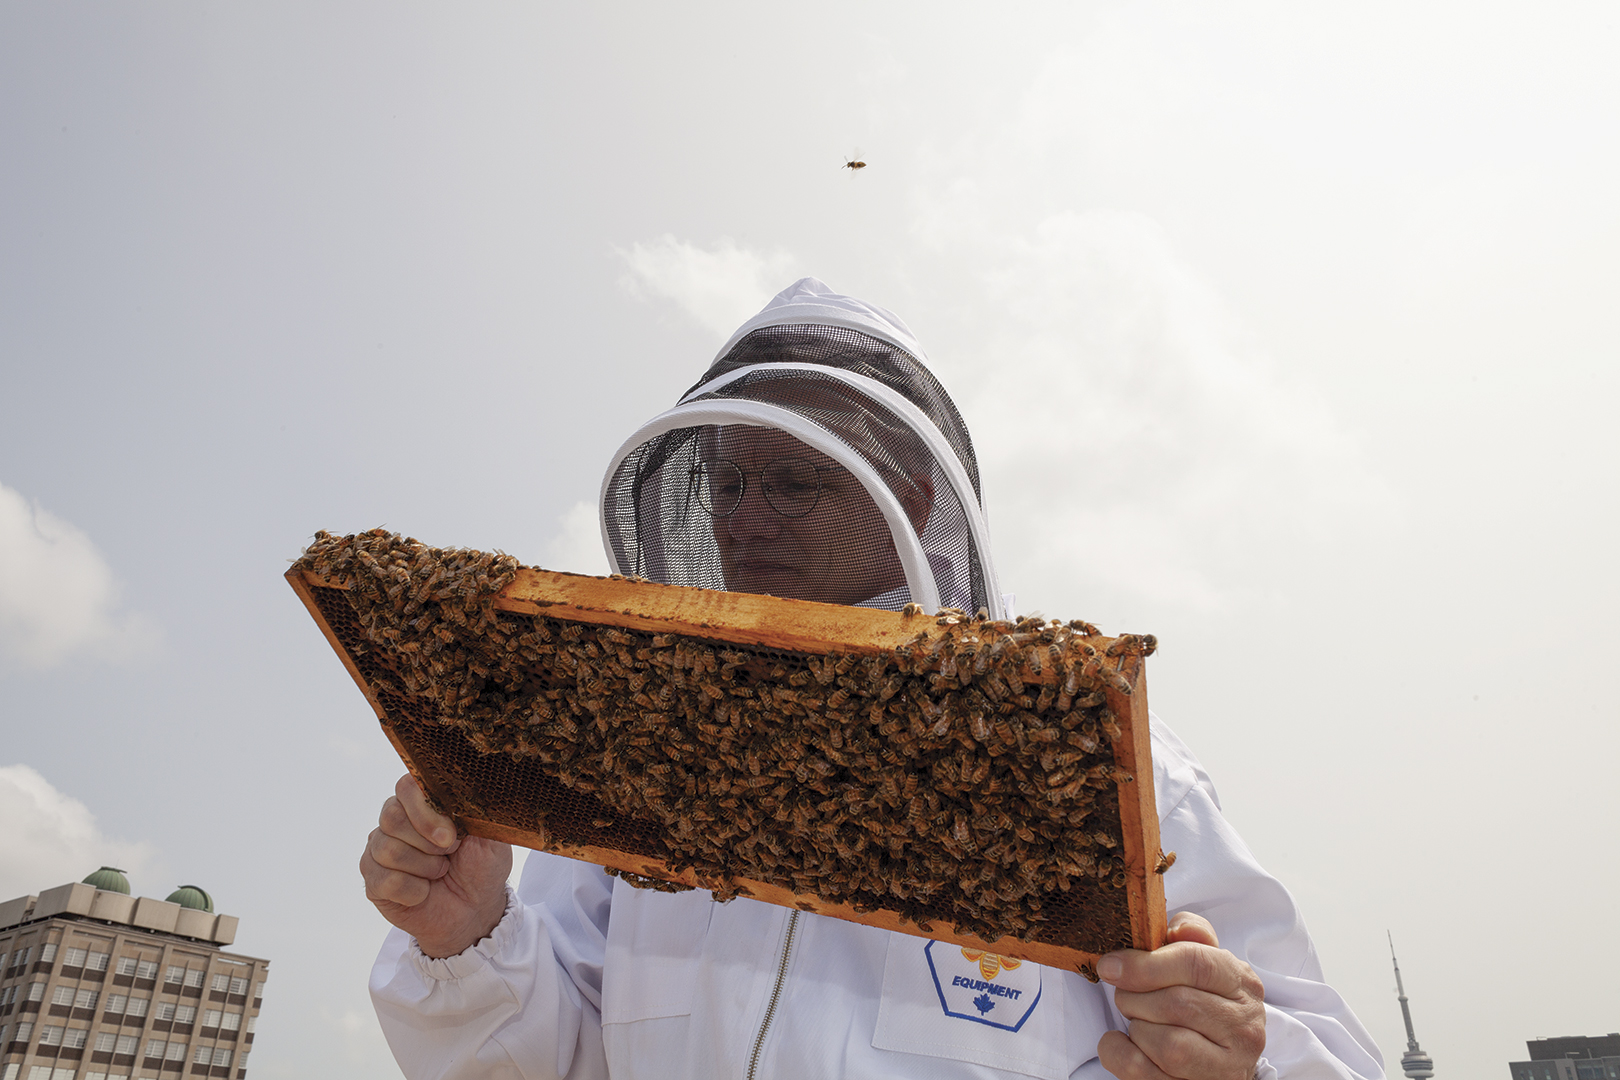 Beekeeper Tom Nolan inspects a frame from a beehive on a rooftop.